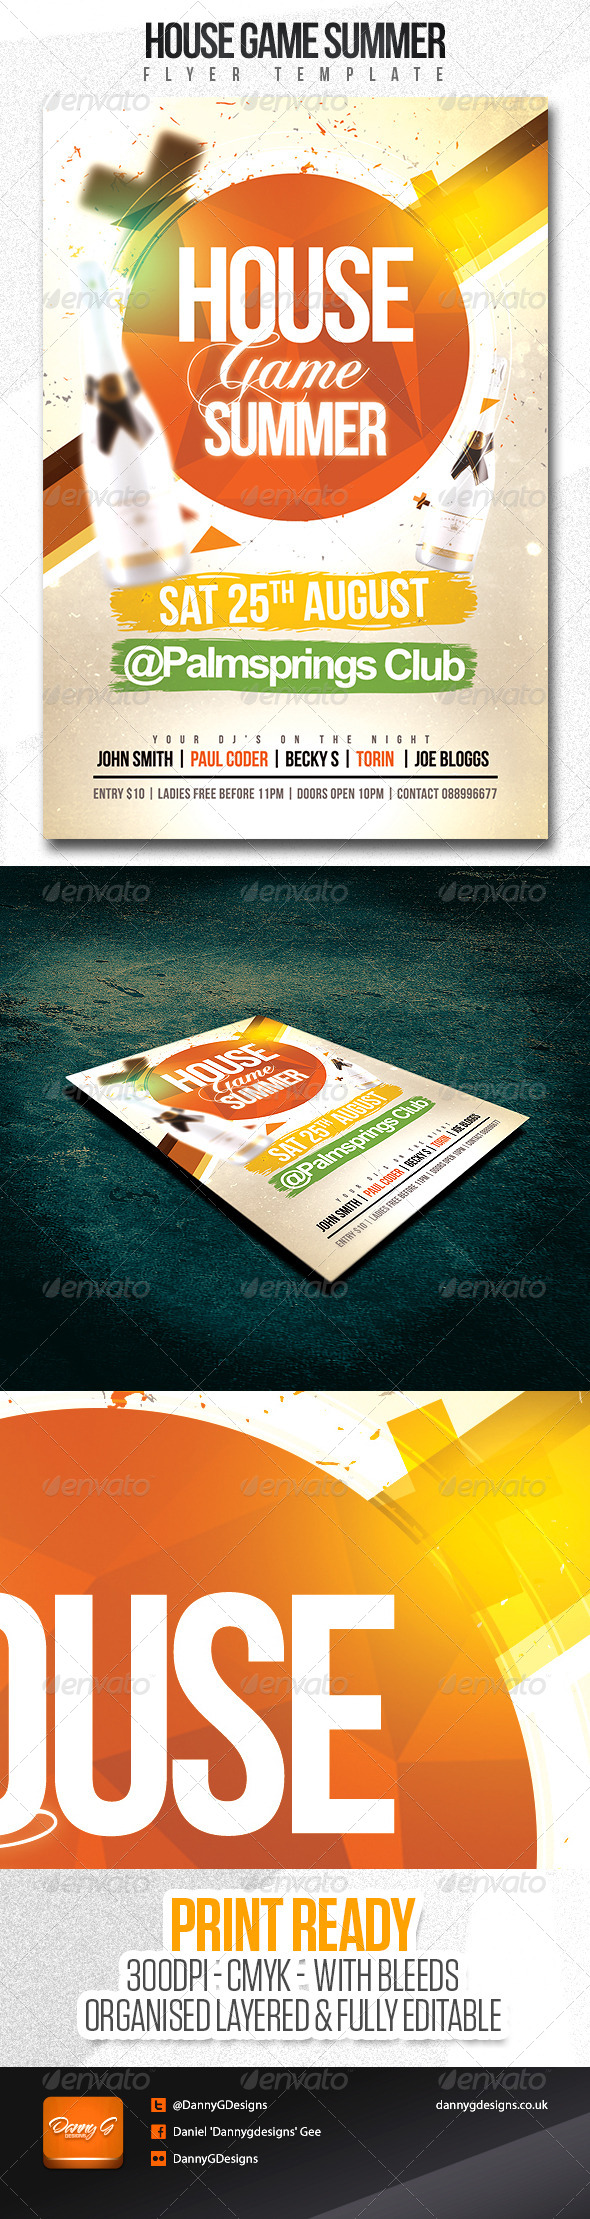 House Game Summer Party/Club Flyer Template - Clubs & Parties Events